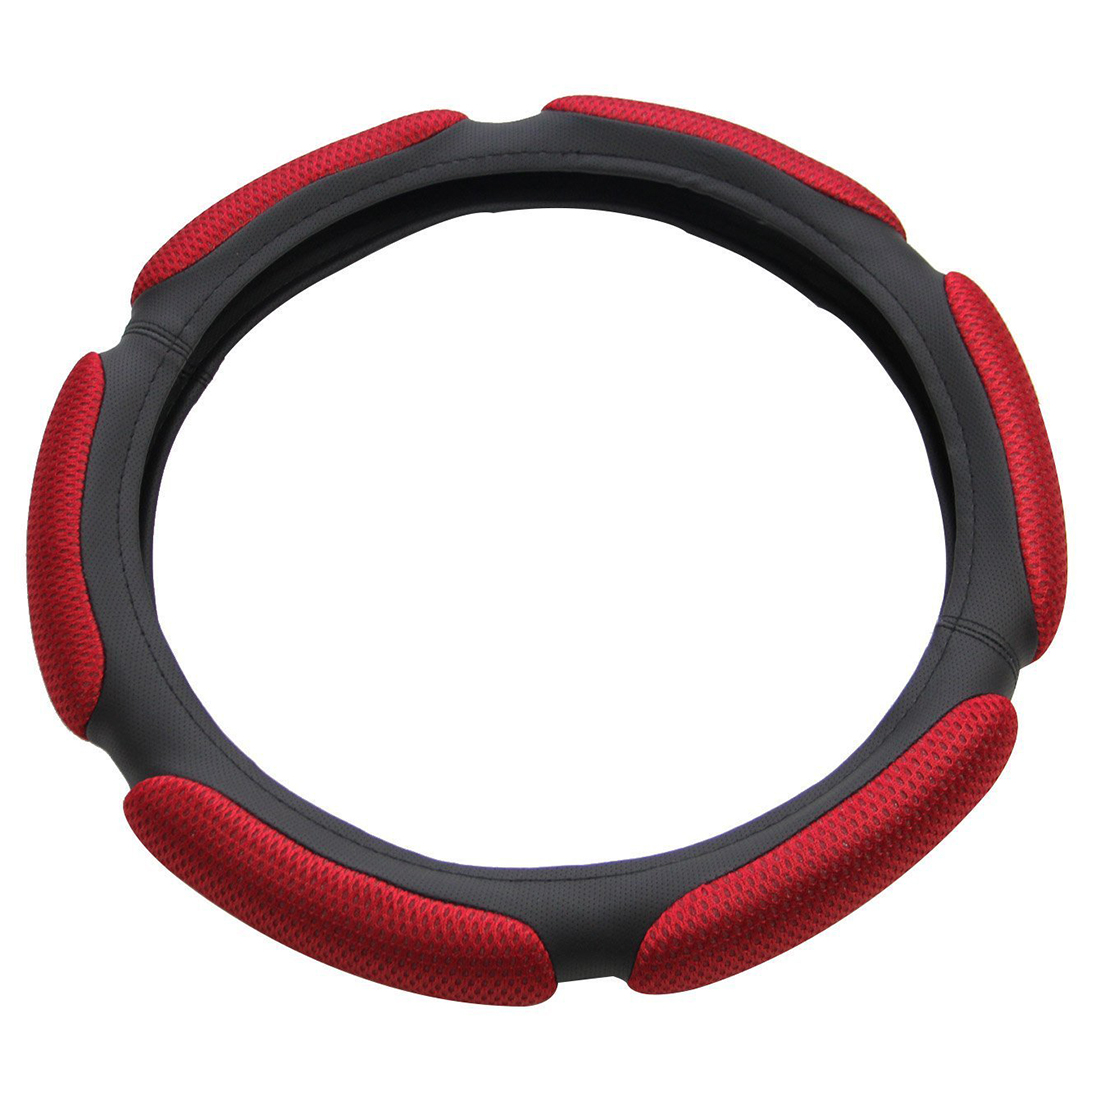 Air Mesh and Foam Padded Universal Steering Wheel Cover Fits 15 inches Steering Wheel Red